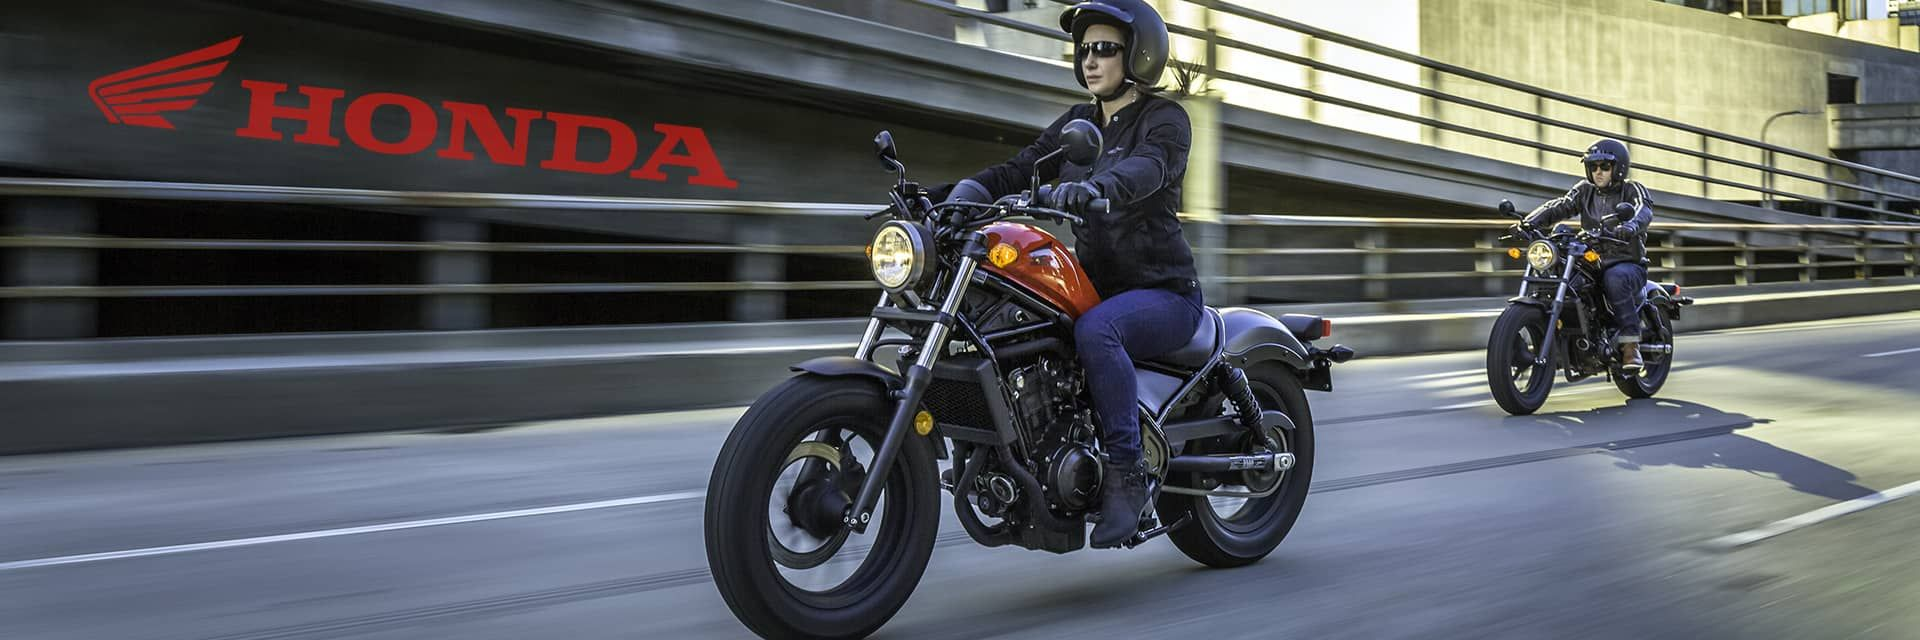 Honda Motorcycles are available at Central Maine Powersports | Lewiston, ME